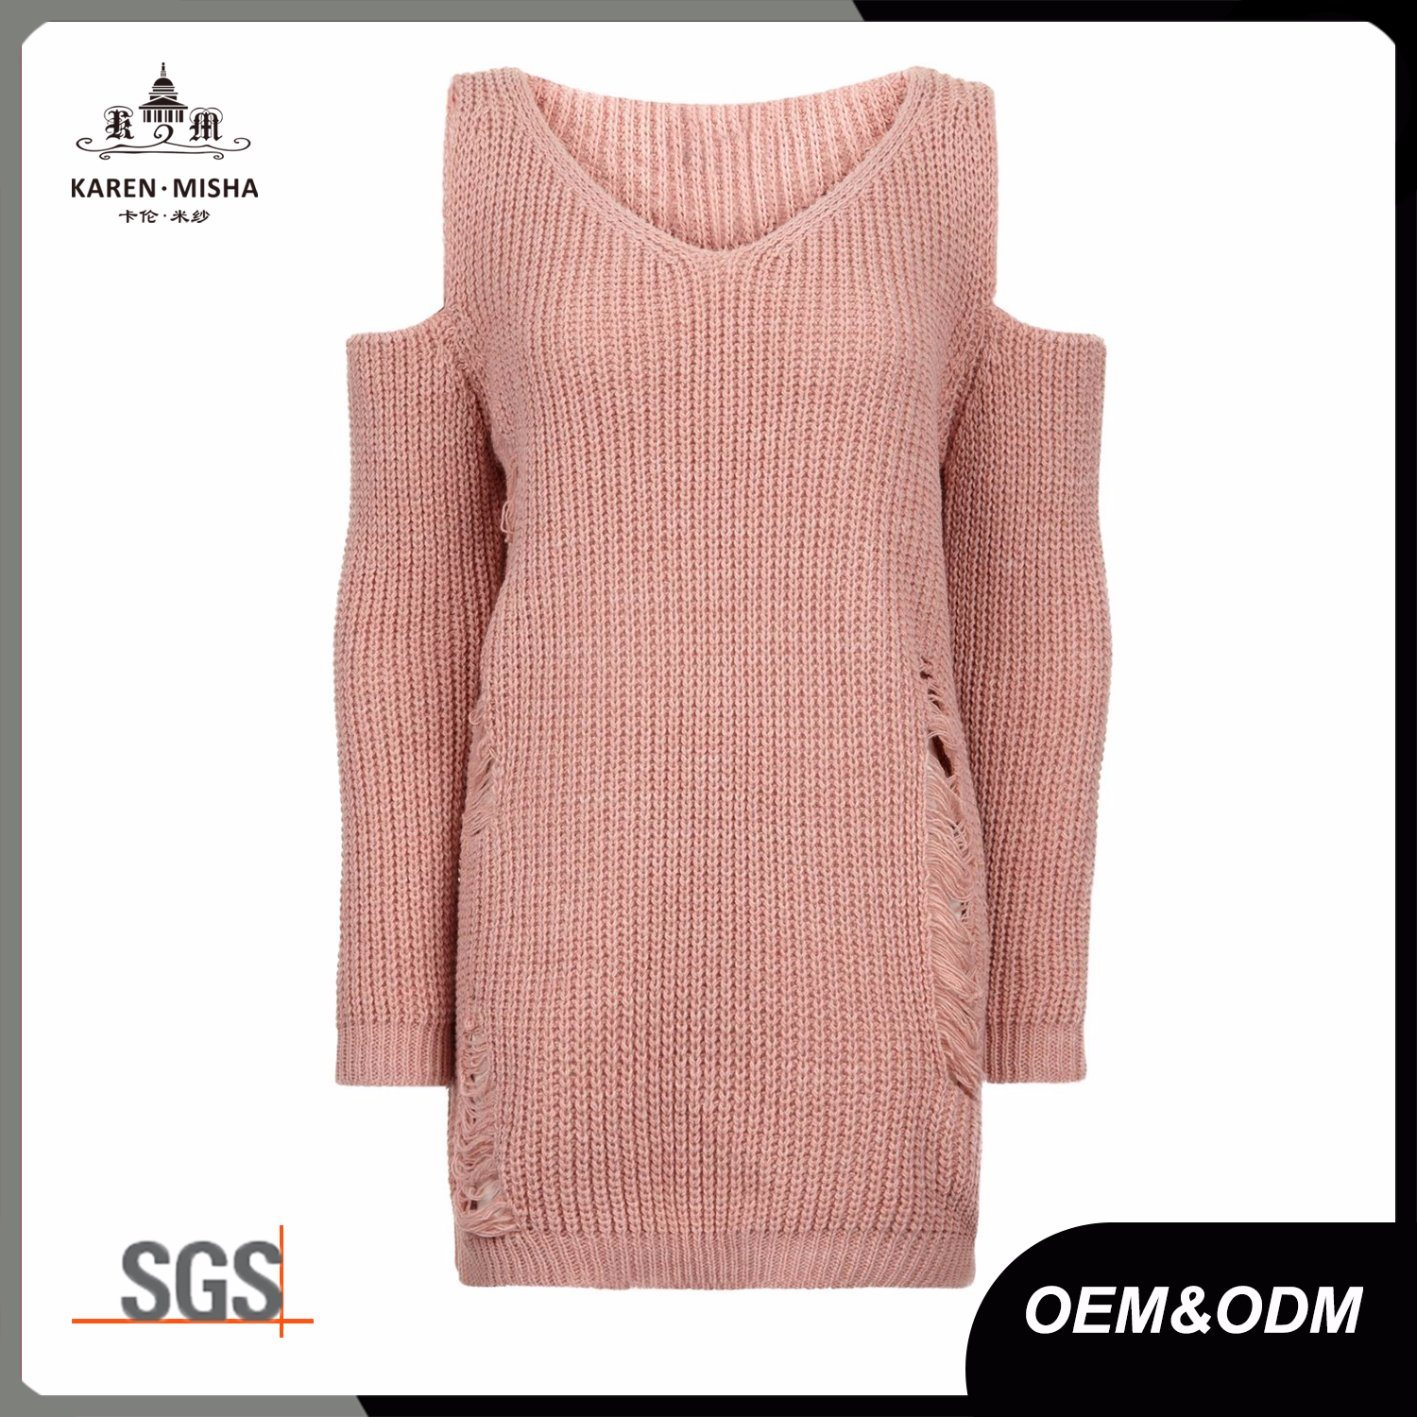 Blush Pink Ladies Cold Shoulder Ladder Knit Fashion Jumper Sweater